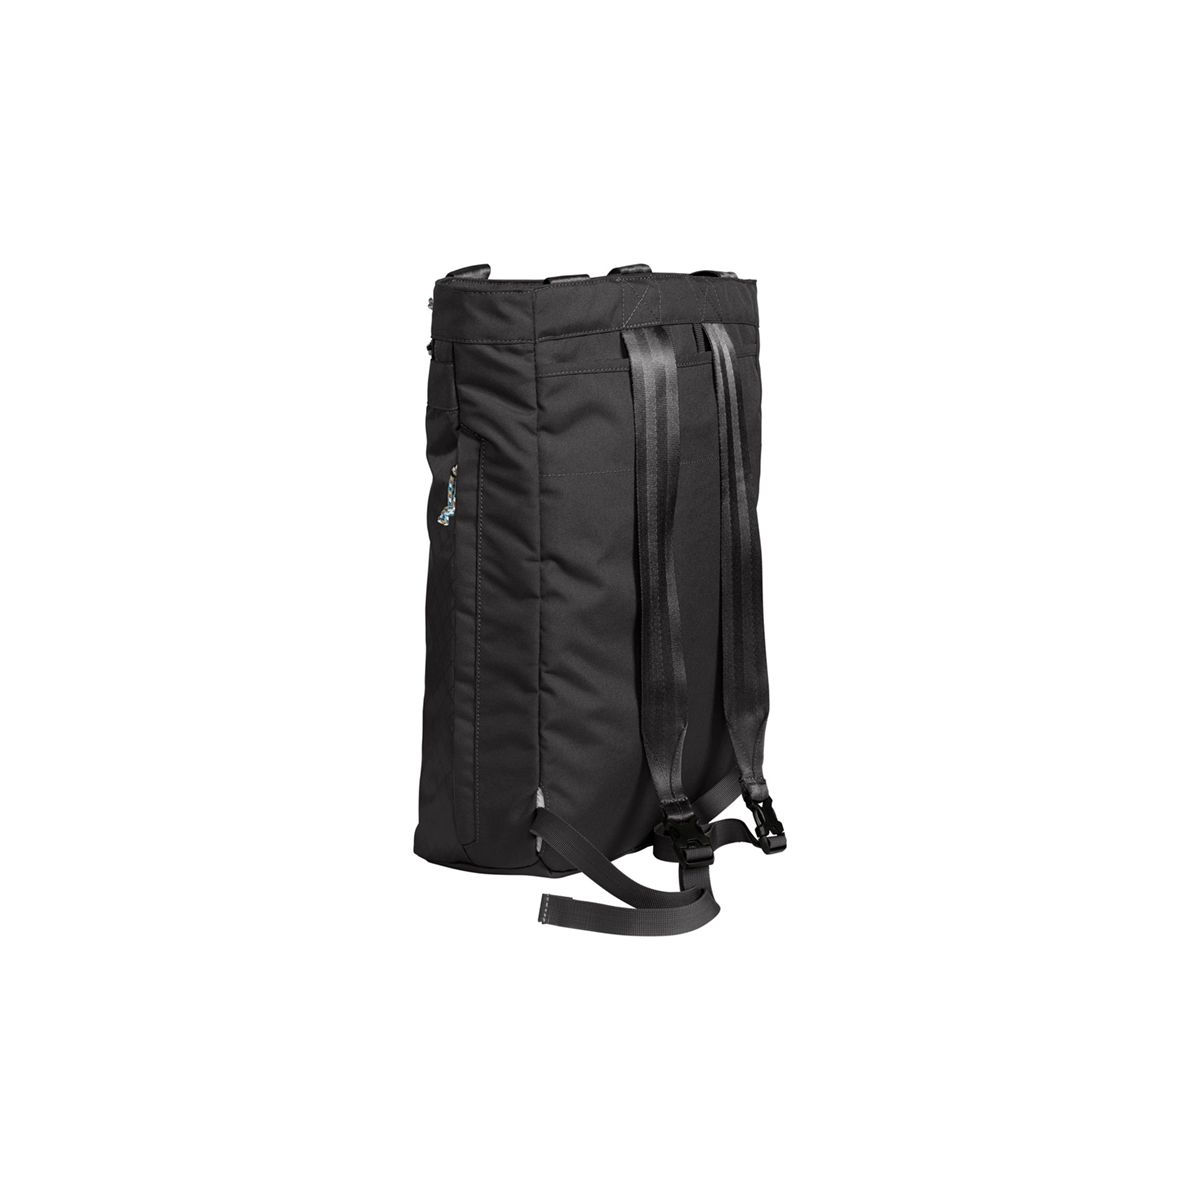 PIVOT TOTE 2in1 Bag